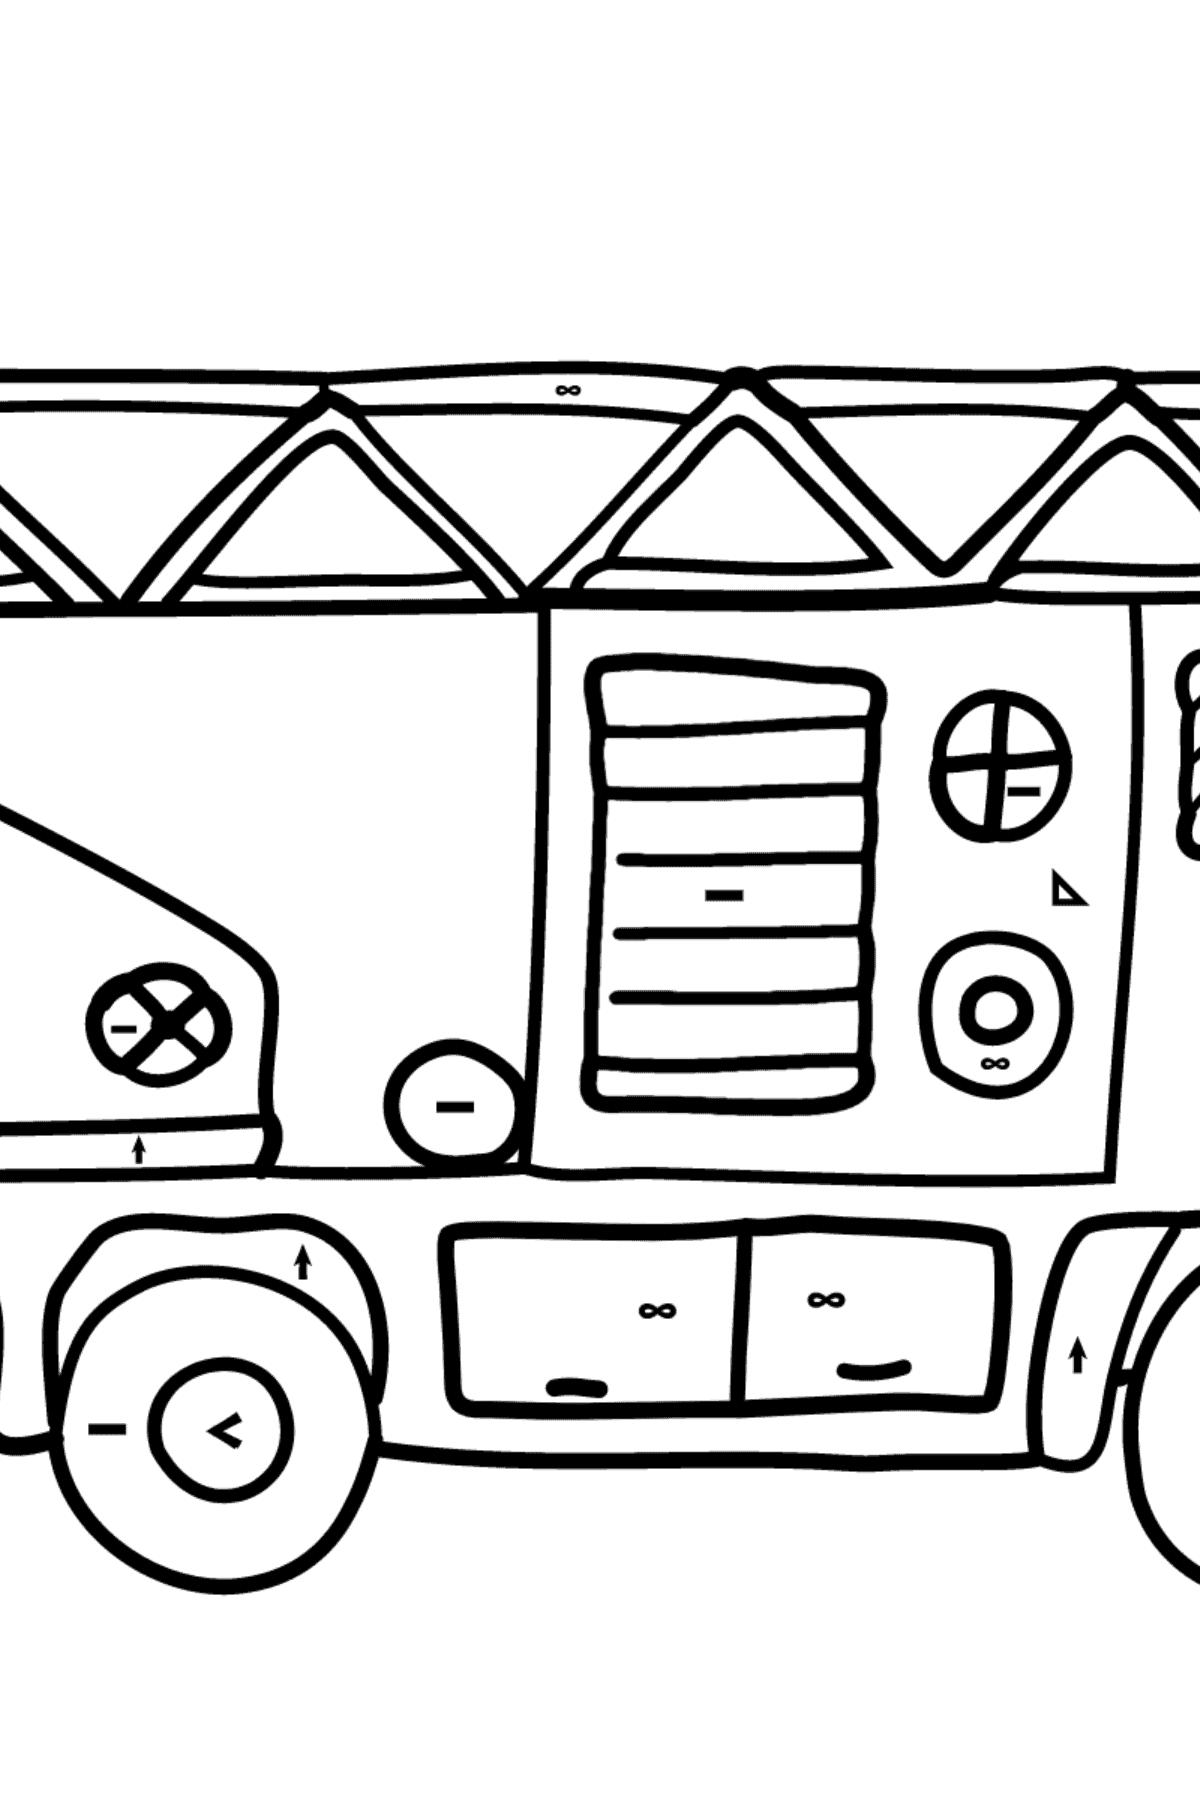 Coloring Page - A Fire Truck for Children  - Color by Symbols and Geometric Shapes